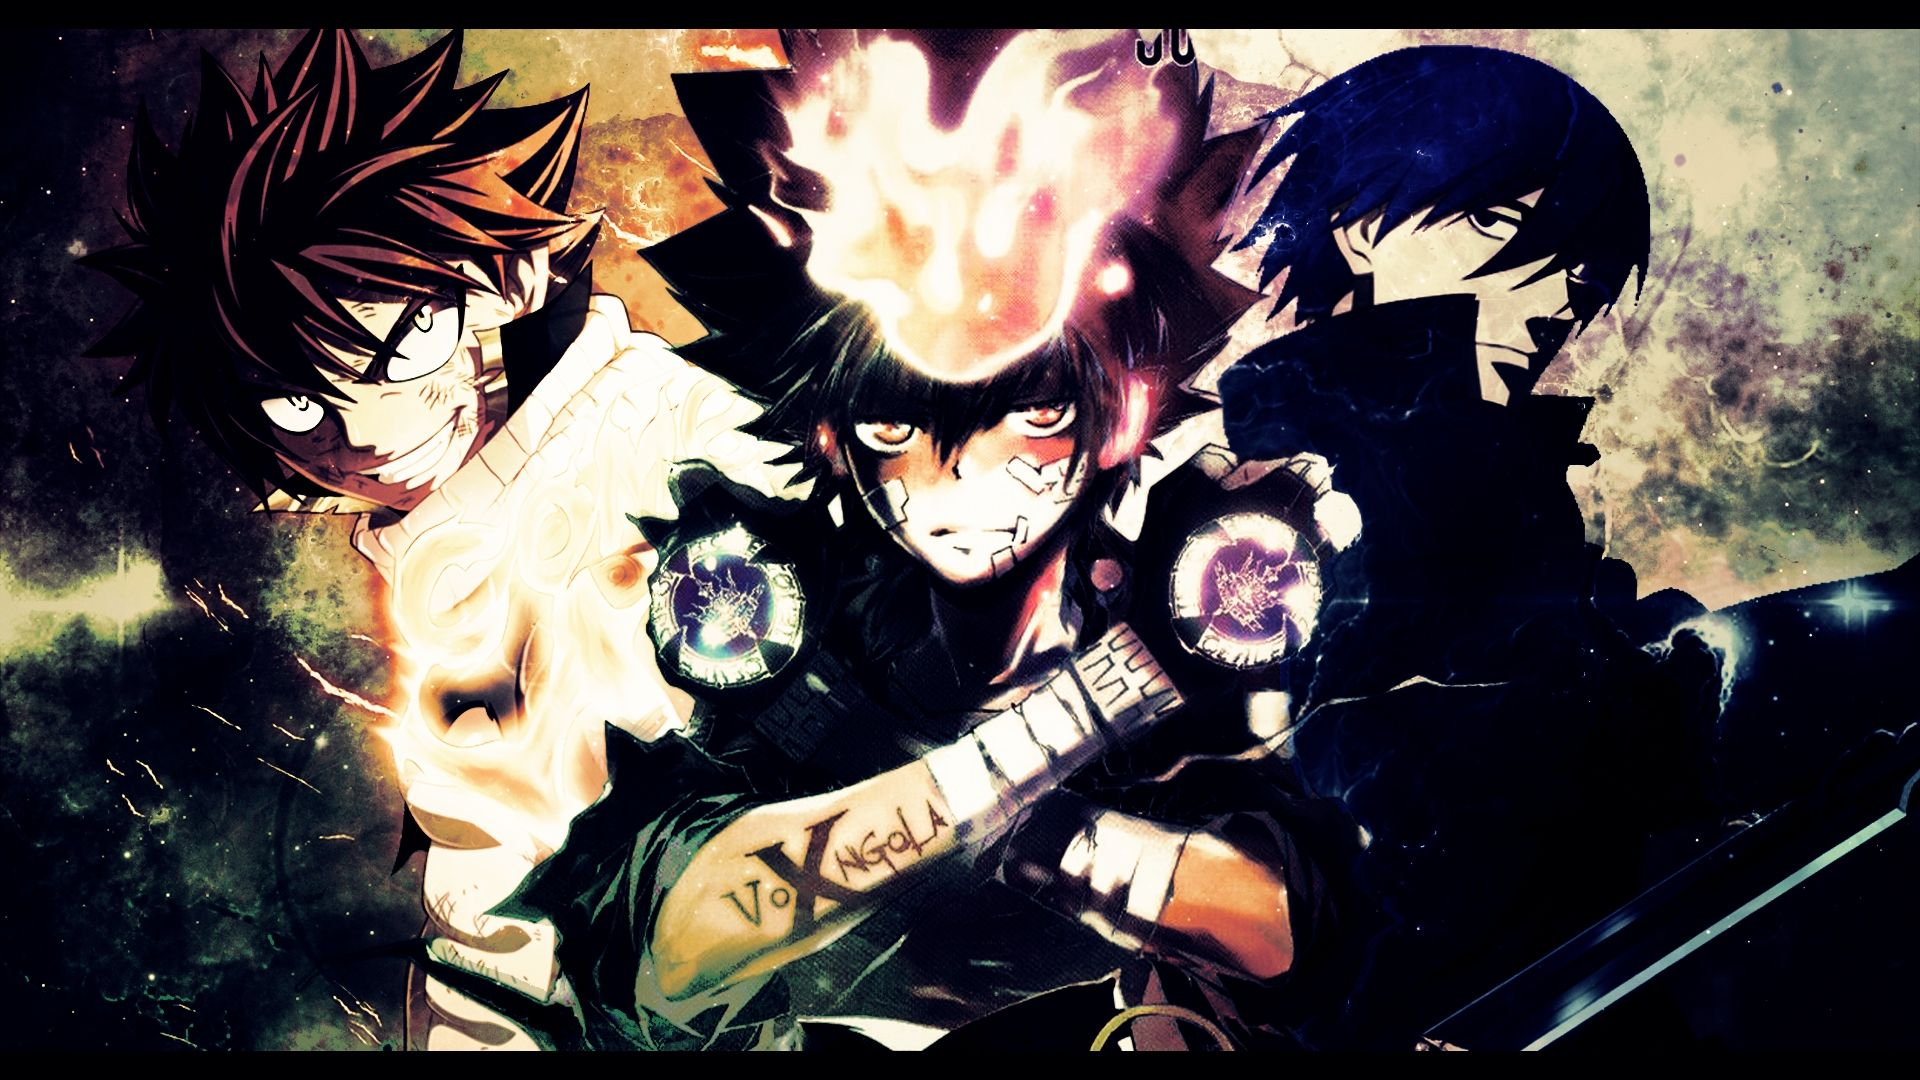 HD Anime Wallpapers Find best latest HD Anime Wallpapers